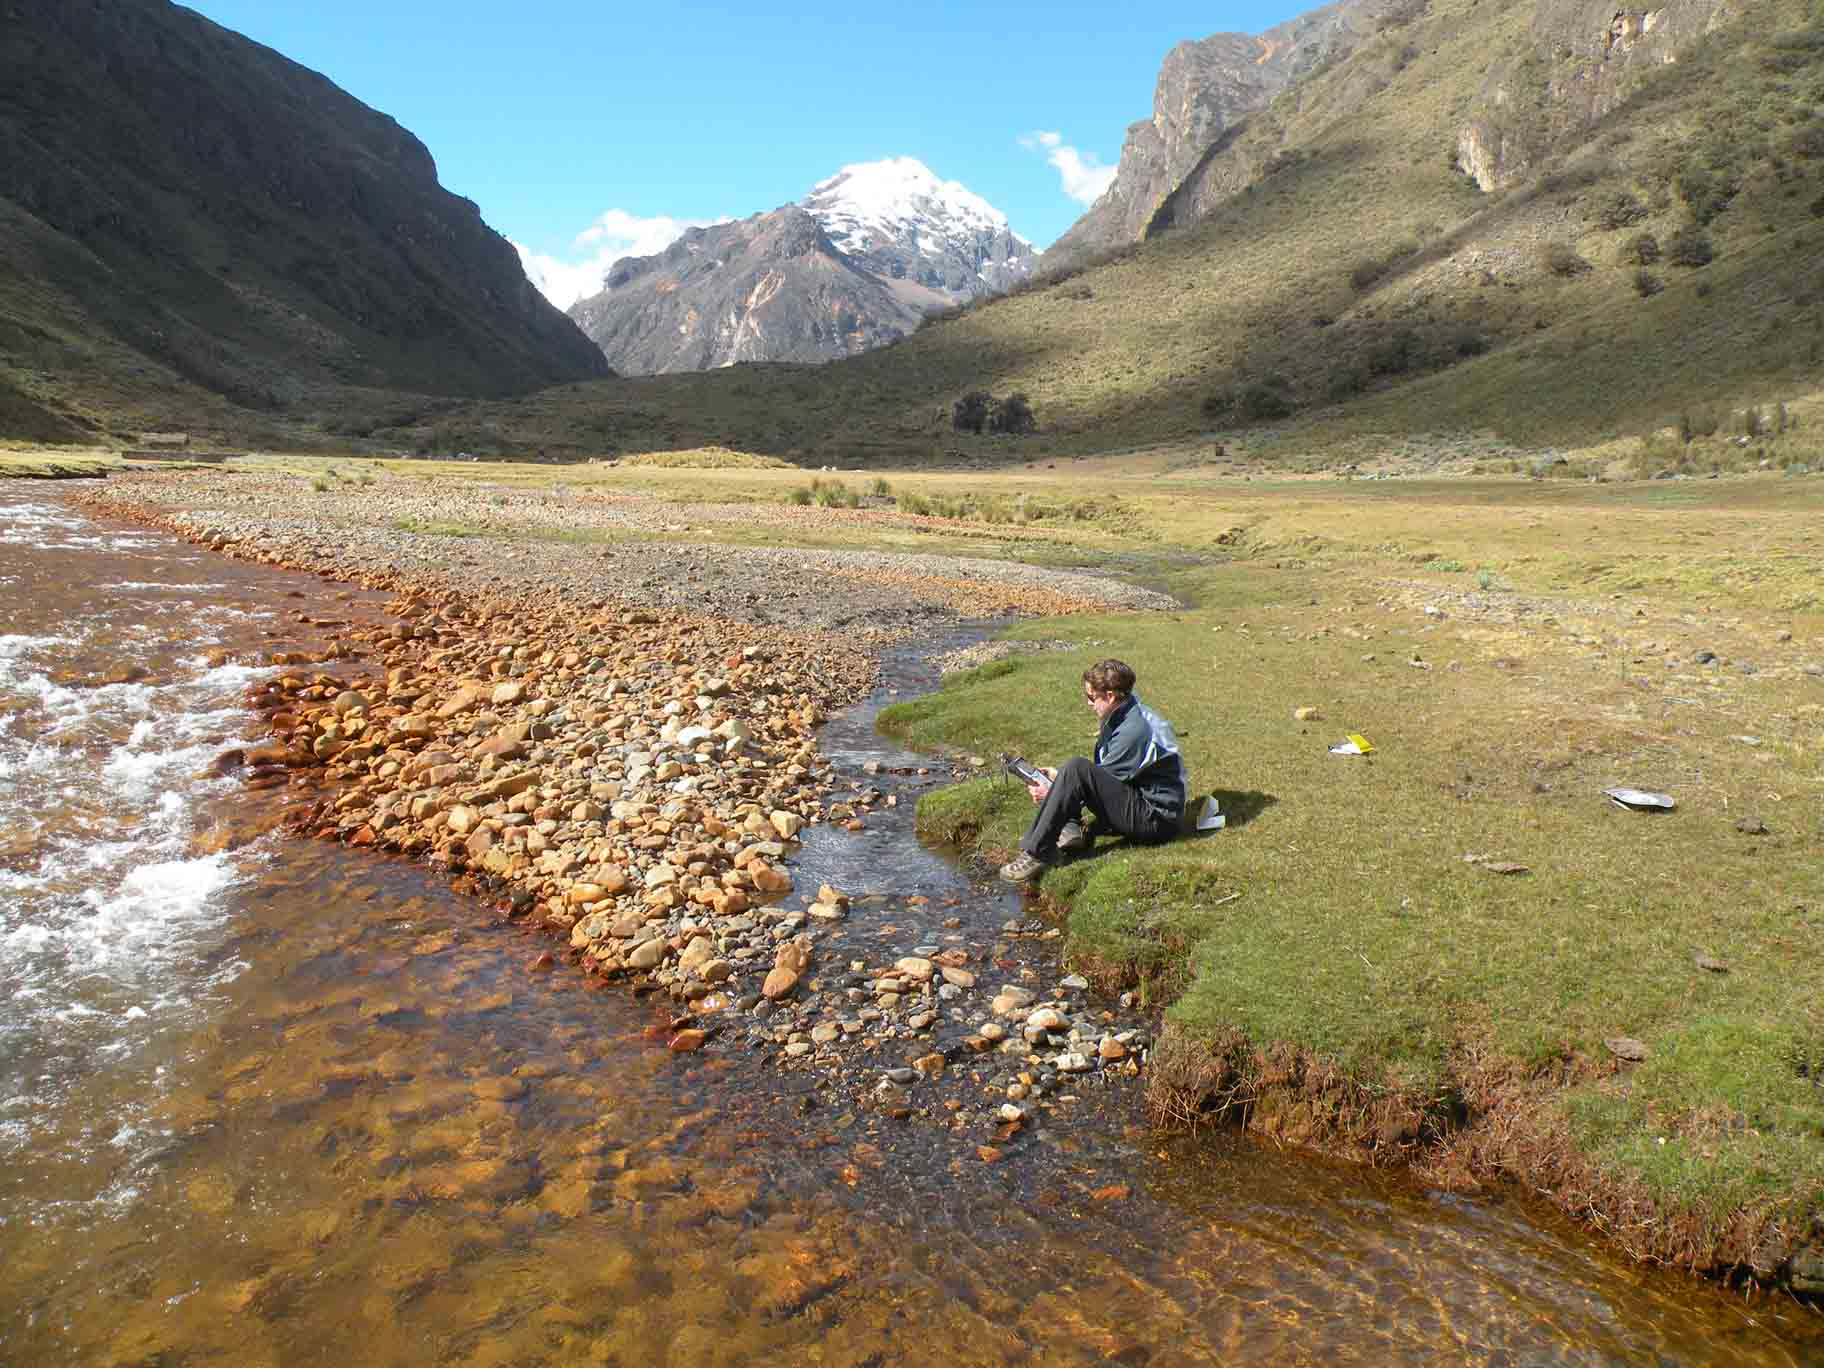 Molly Polk conducting field research in the high Andes of Peru